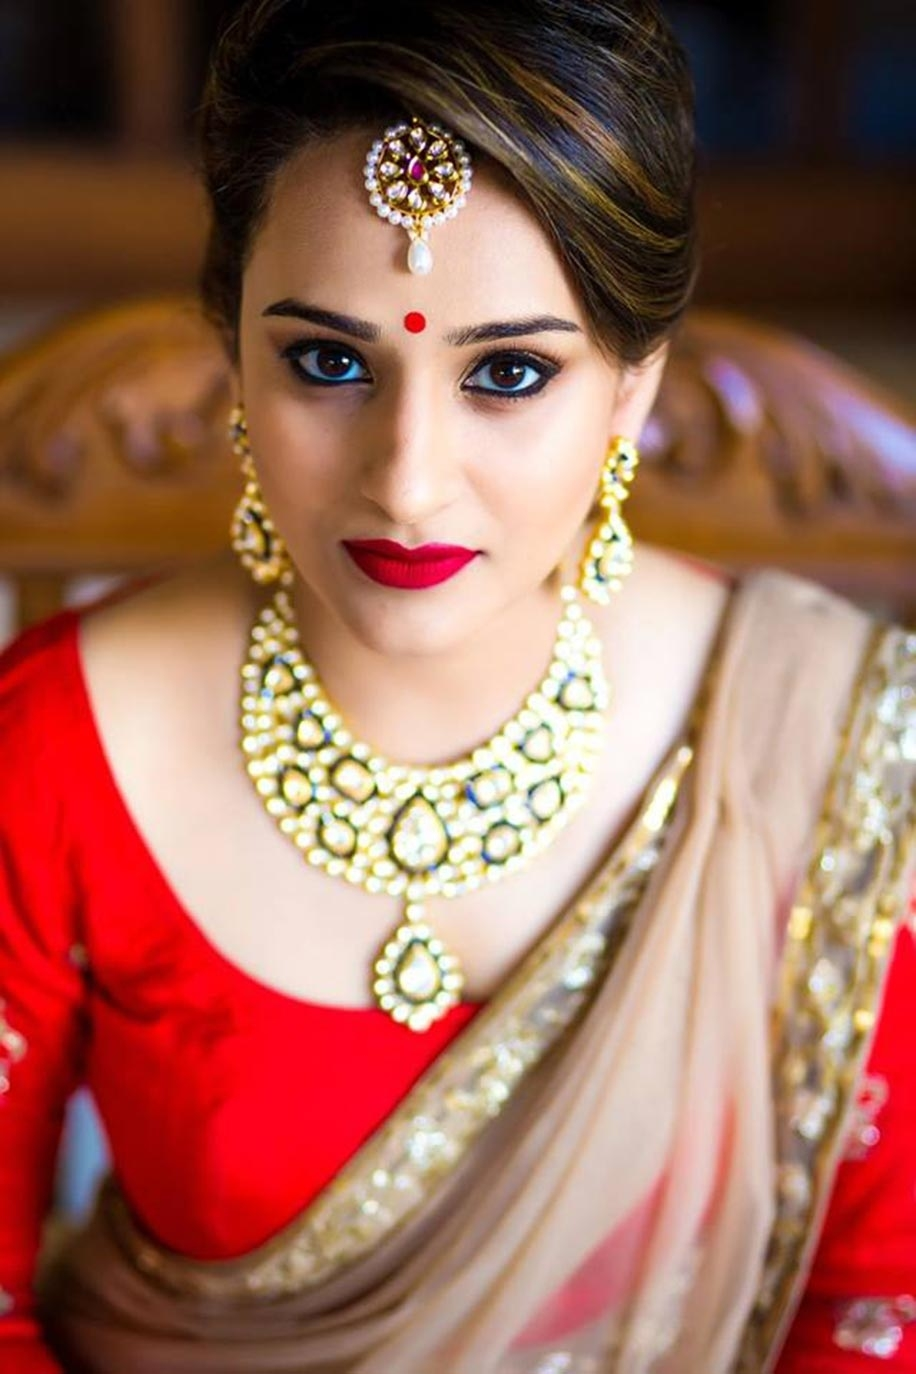 Top 10 Makeup Looks For Your Wedding Reception | Bridal Beauty intended for Bridal Makeup Gallery